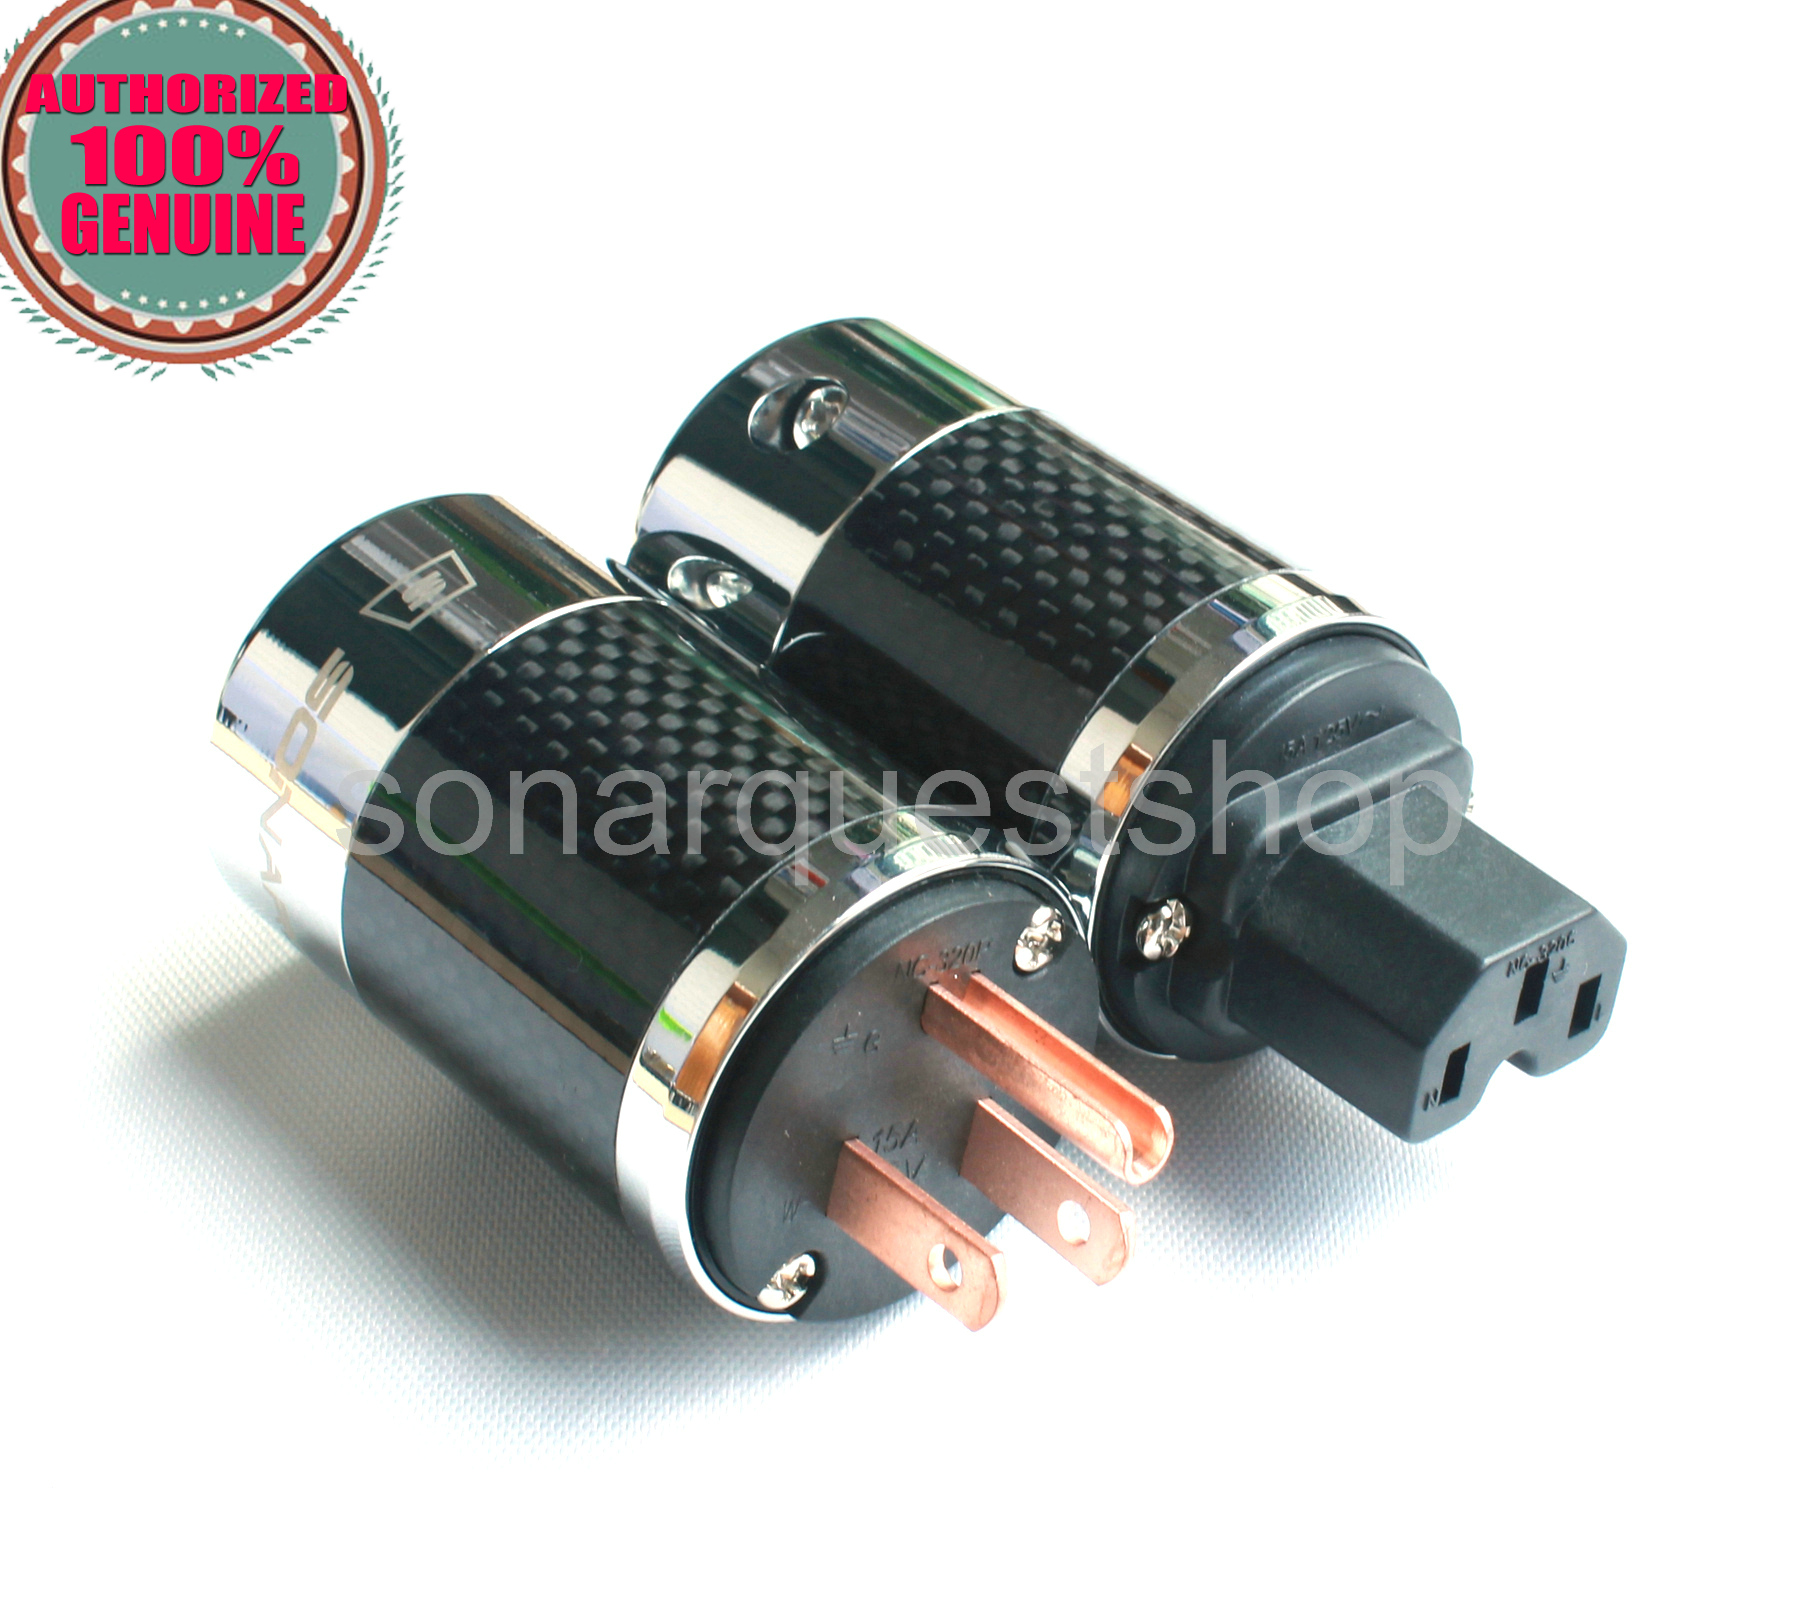 SONARQUEST SQ-P39(C)B + SQ-C39(C)B US Red Copper BK Carbon fiber Power Plug & IEC Connector